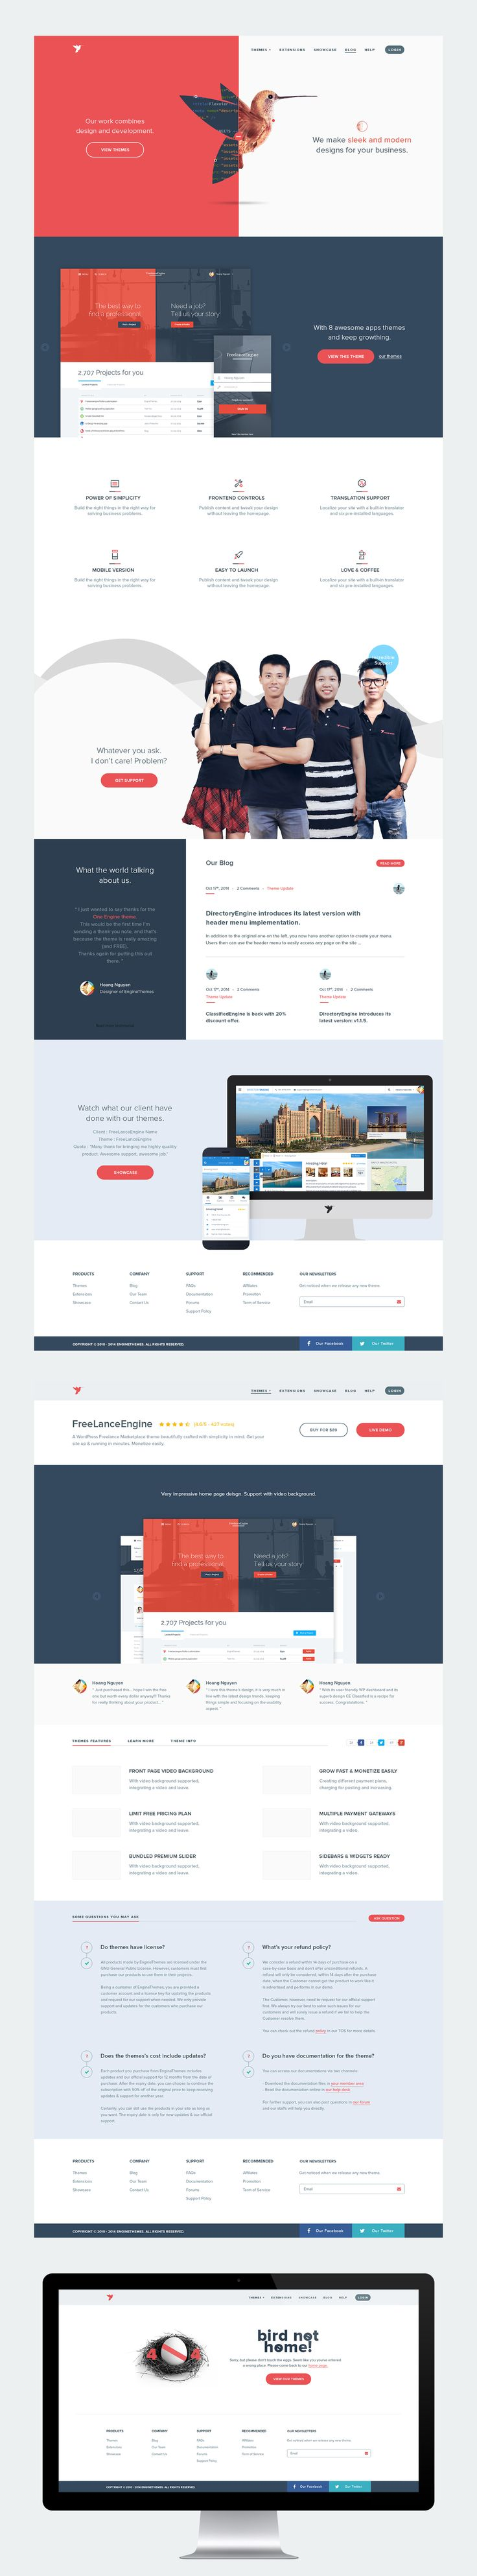 EngineThemes Re-design, website design by Hoang Nguyen, via Behance.